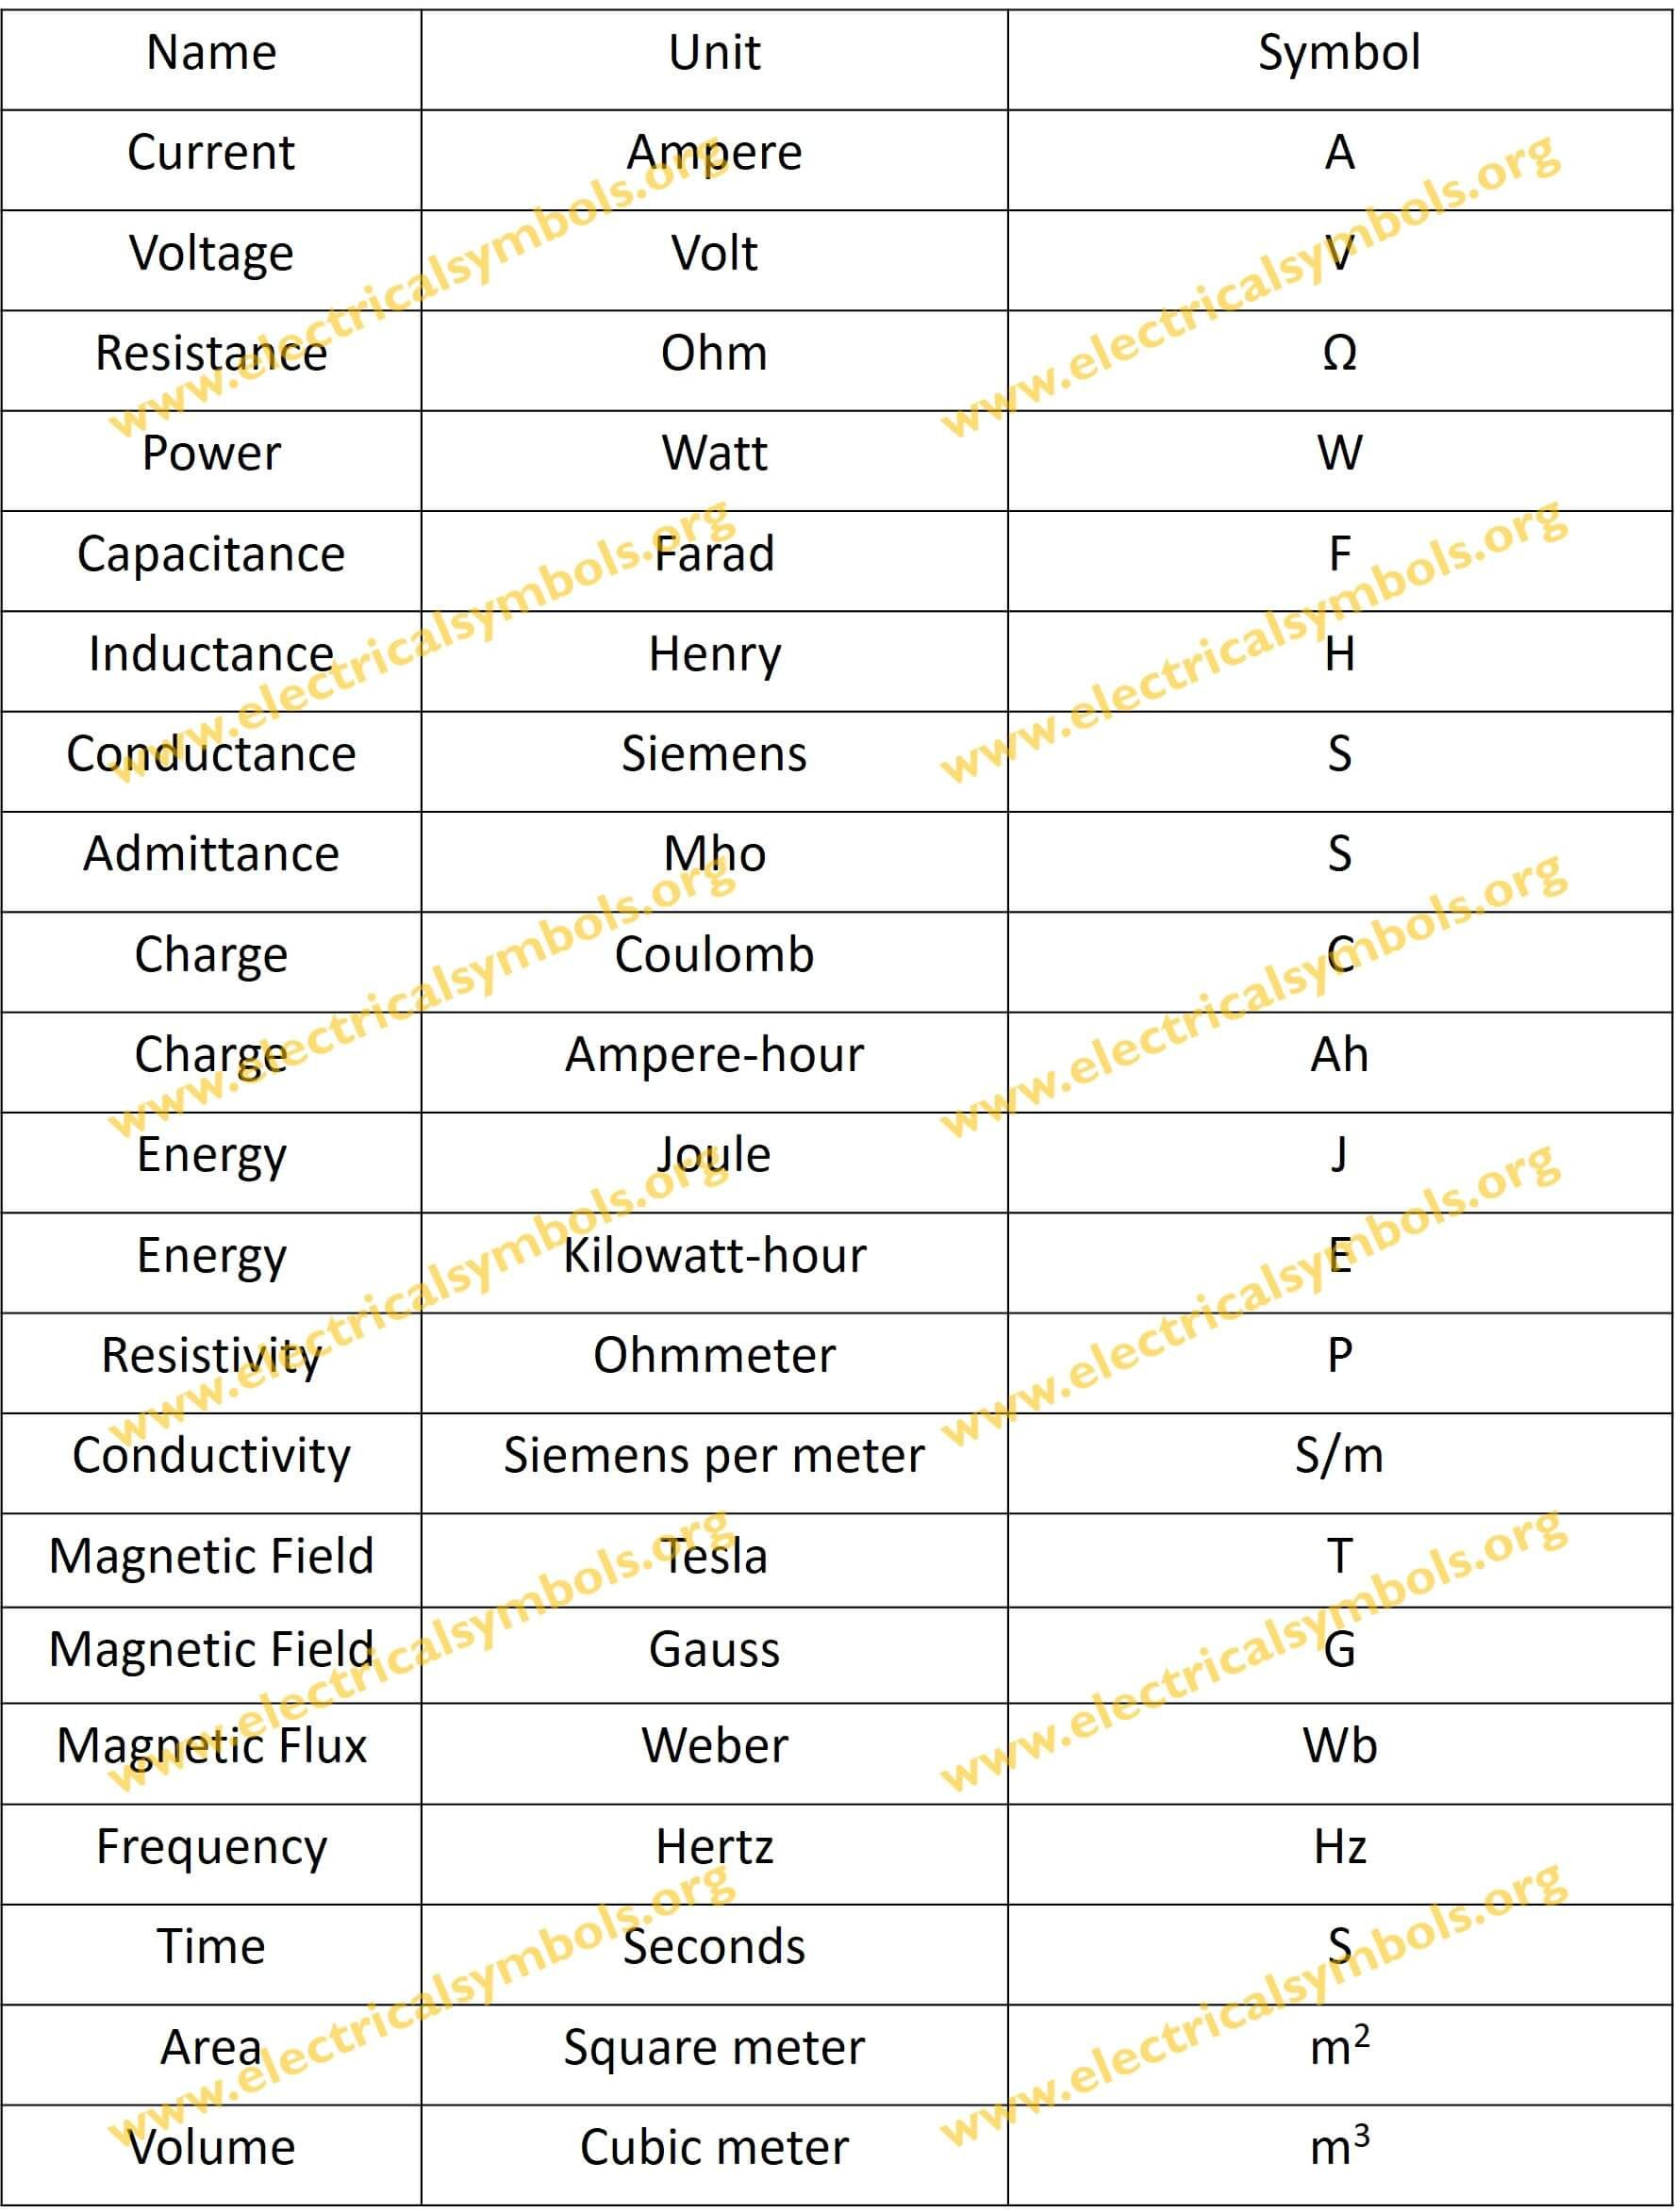 20 Basic Units Of Electrical Engineering Quantities And Their Symbols